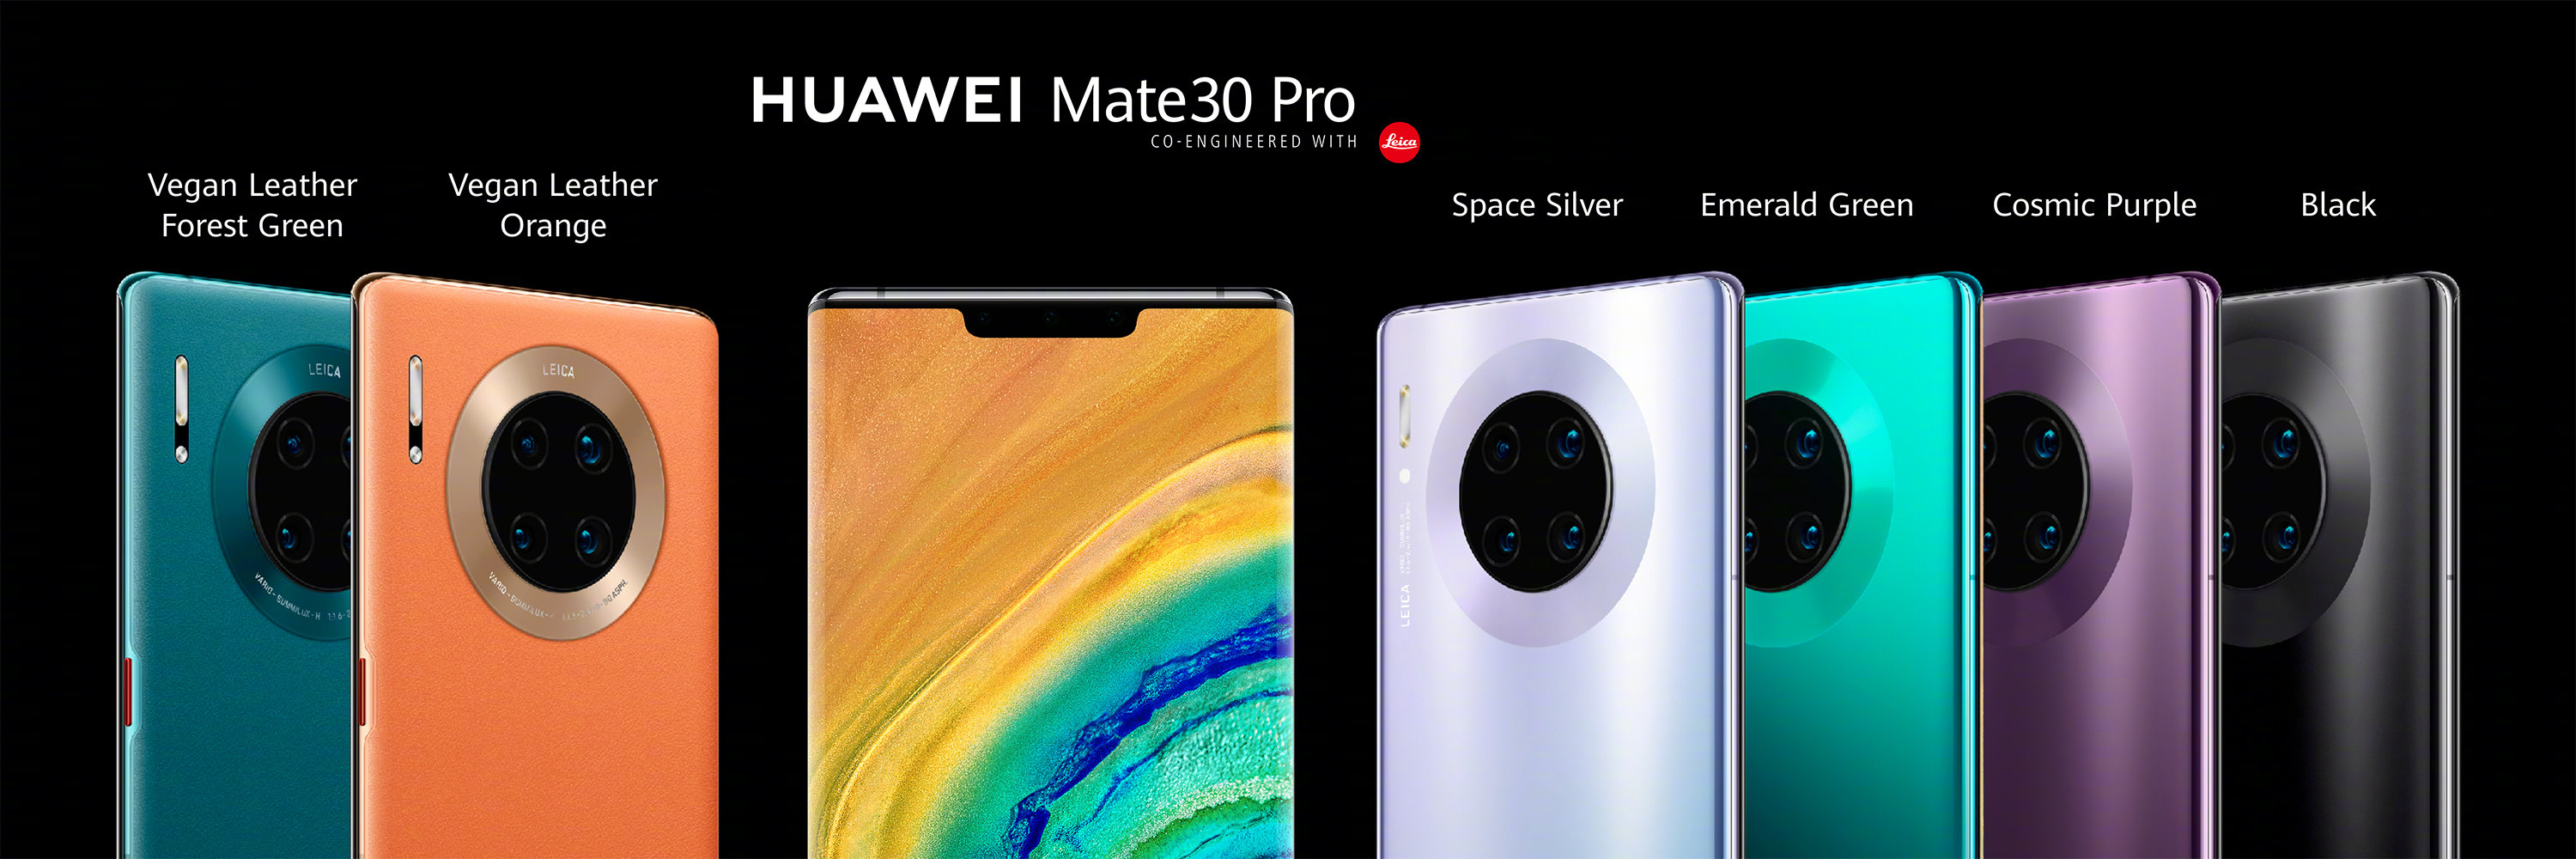 Huawei Mate 30 Pro and Mate 30 Pro (5G): Specifications ...